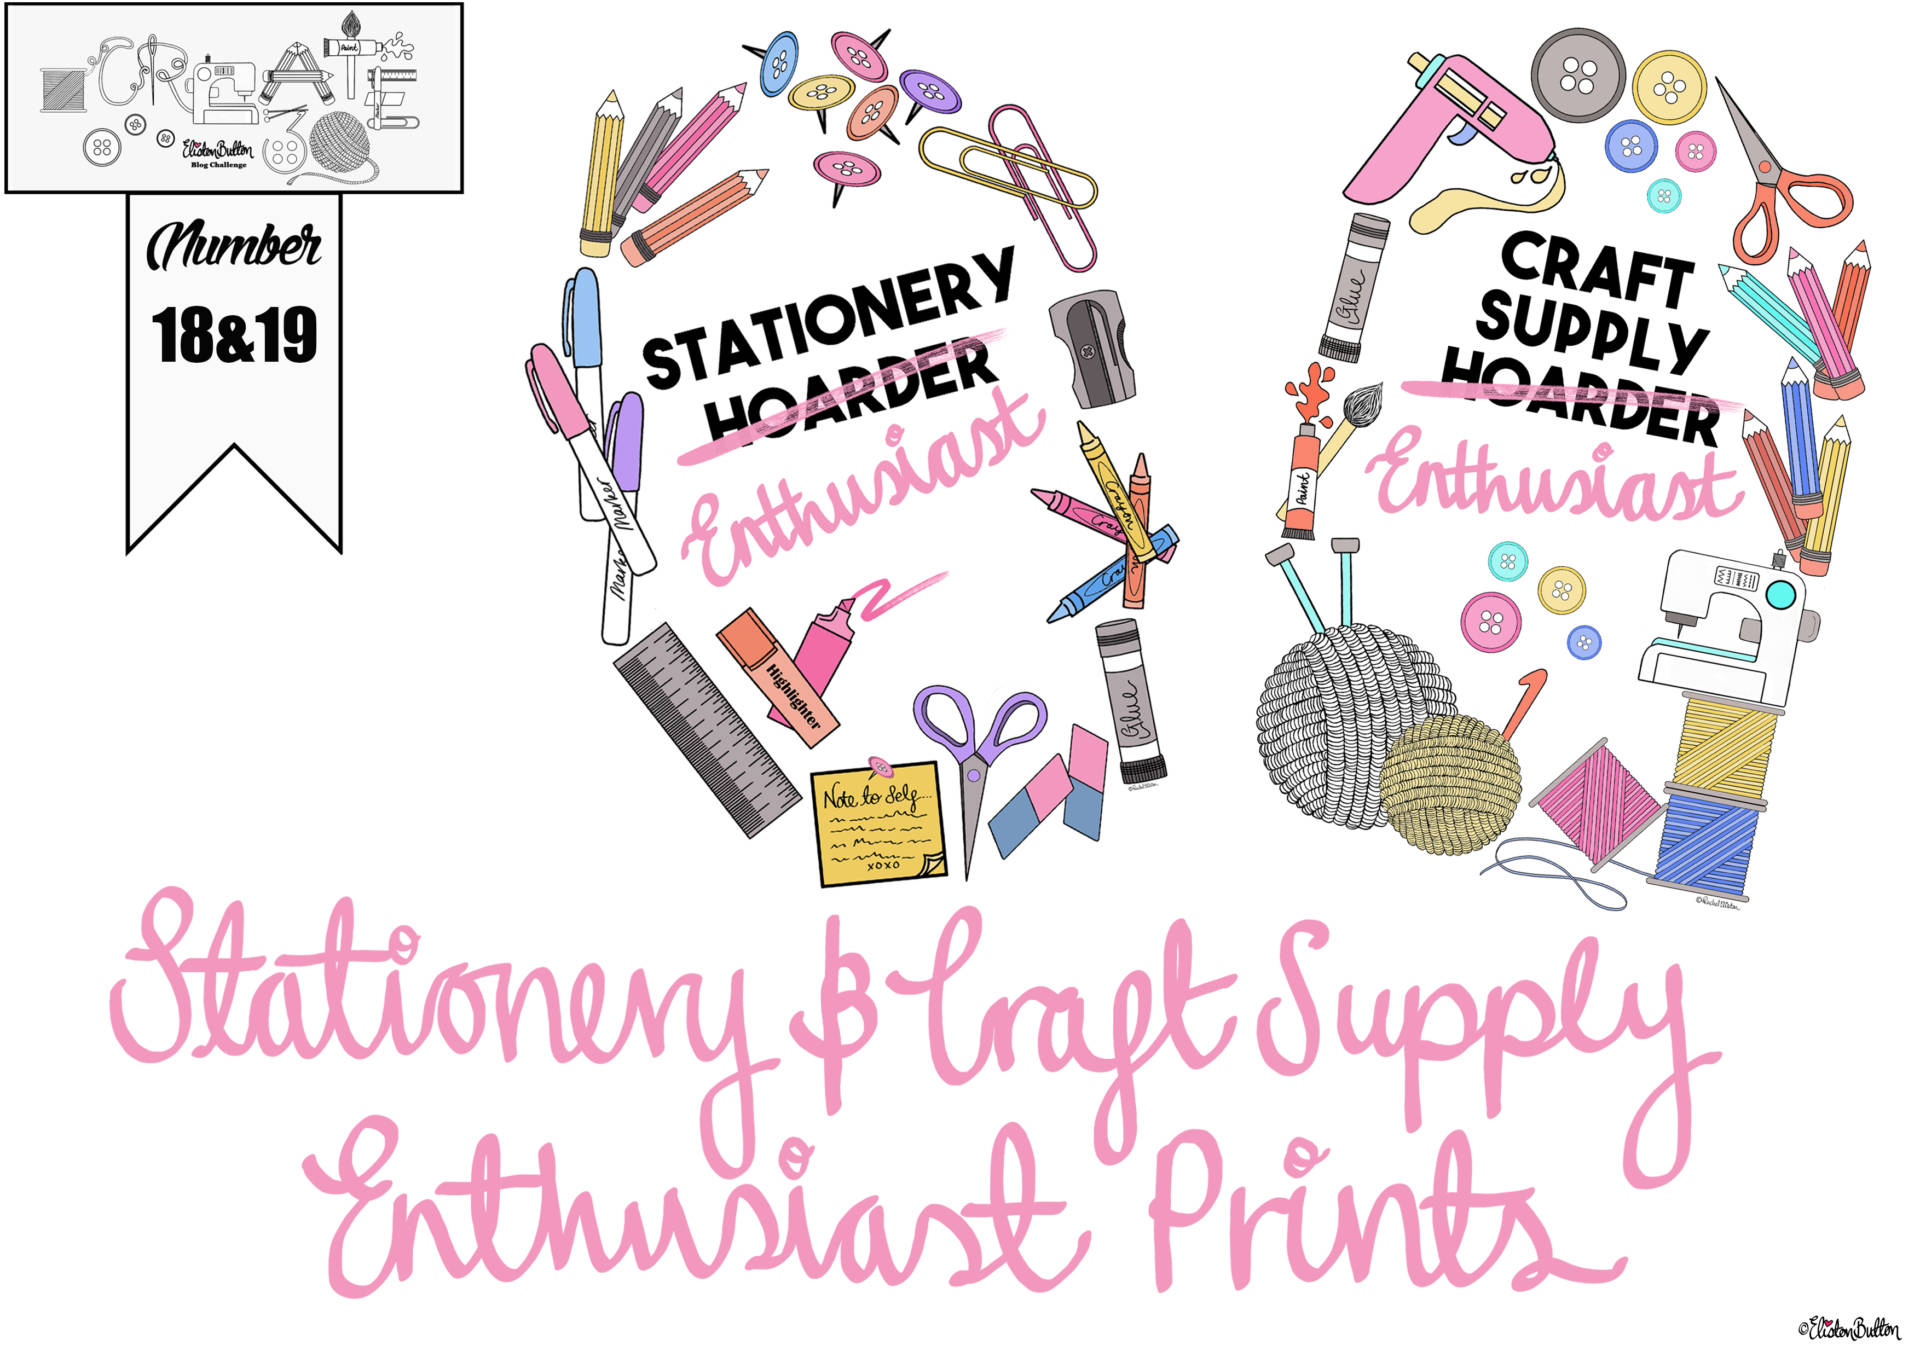 Create 30 - No. 18& 19 - Craft Supply and Stationery Enthusiast Prints by Eliston Button - Create 30 - No. 18 & 19 - Stationery and Craft Supply Enthusiast Prints at www.elistonbutton.com - Eliston Button - That Crafty Kid – Art, Design, Craft & Adventure.